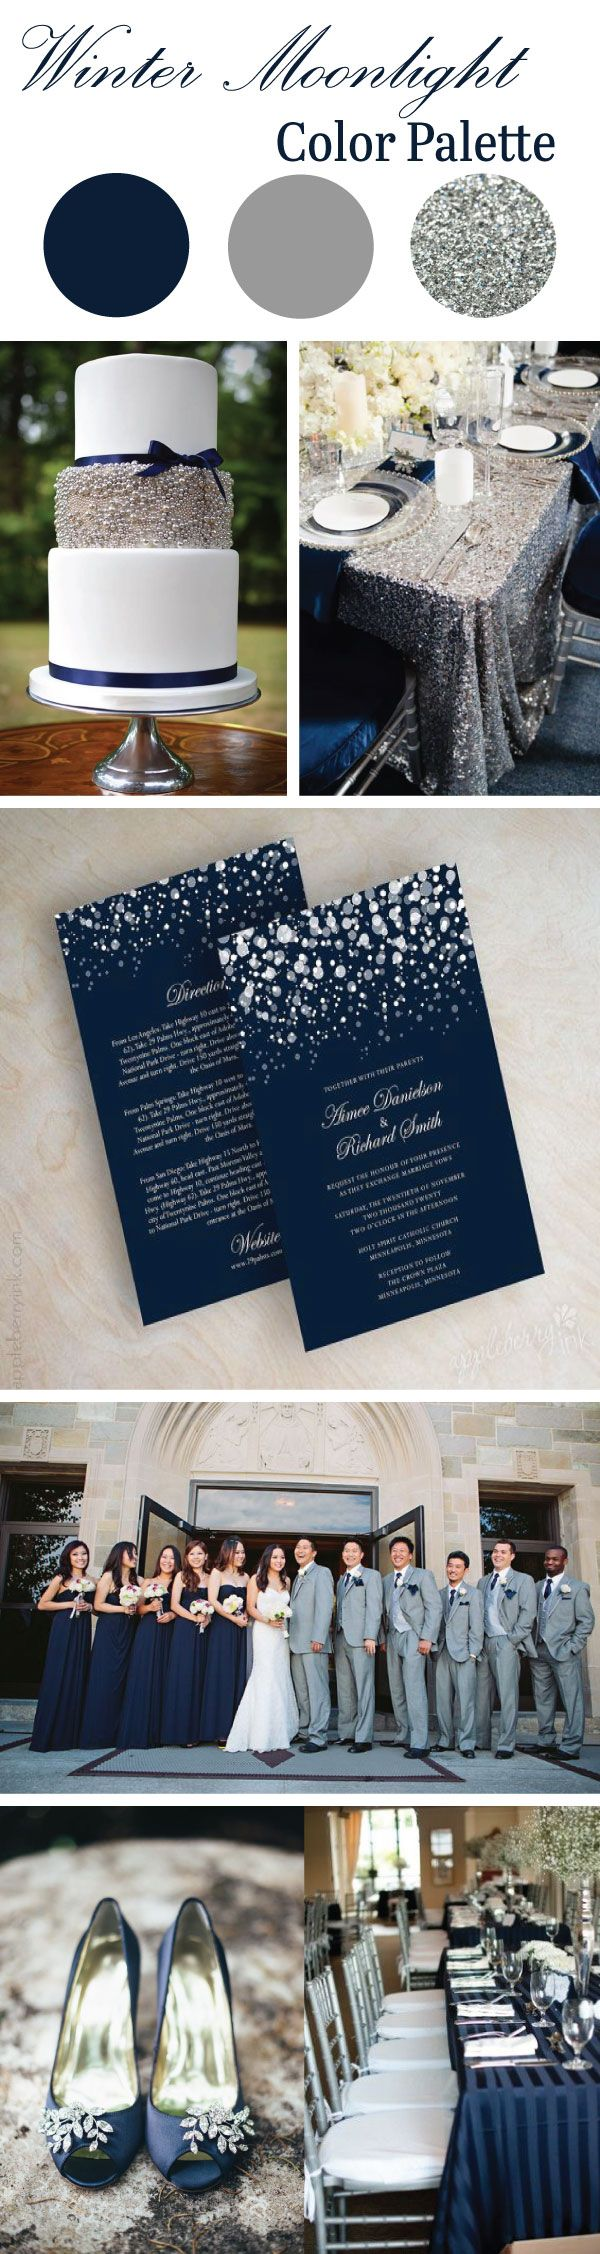 Winter Moonlight Wedding Color Palette   LinenTablecloth Blog  colorpalette   wedding  events